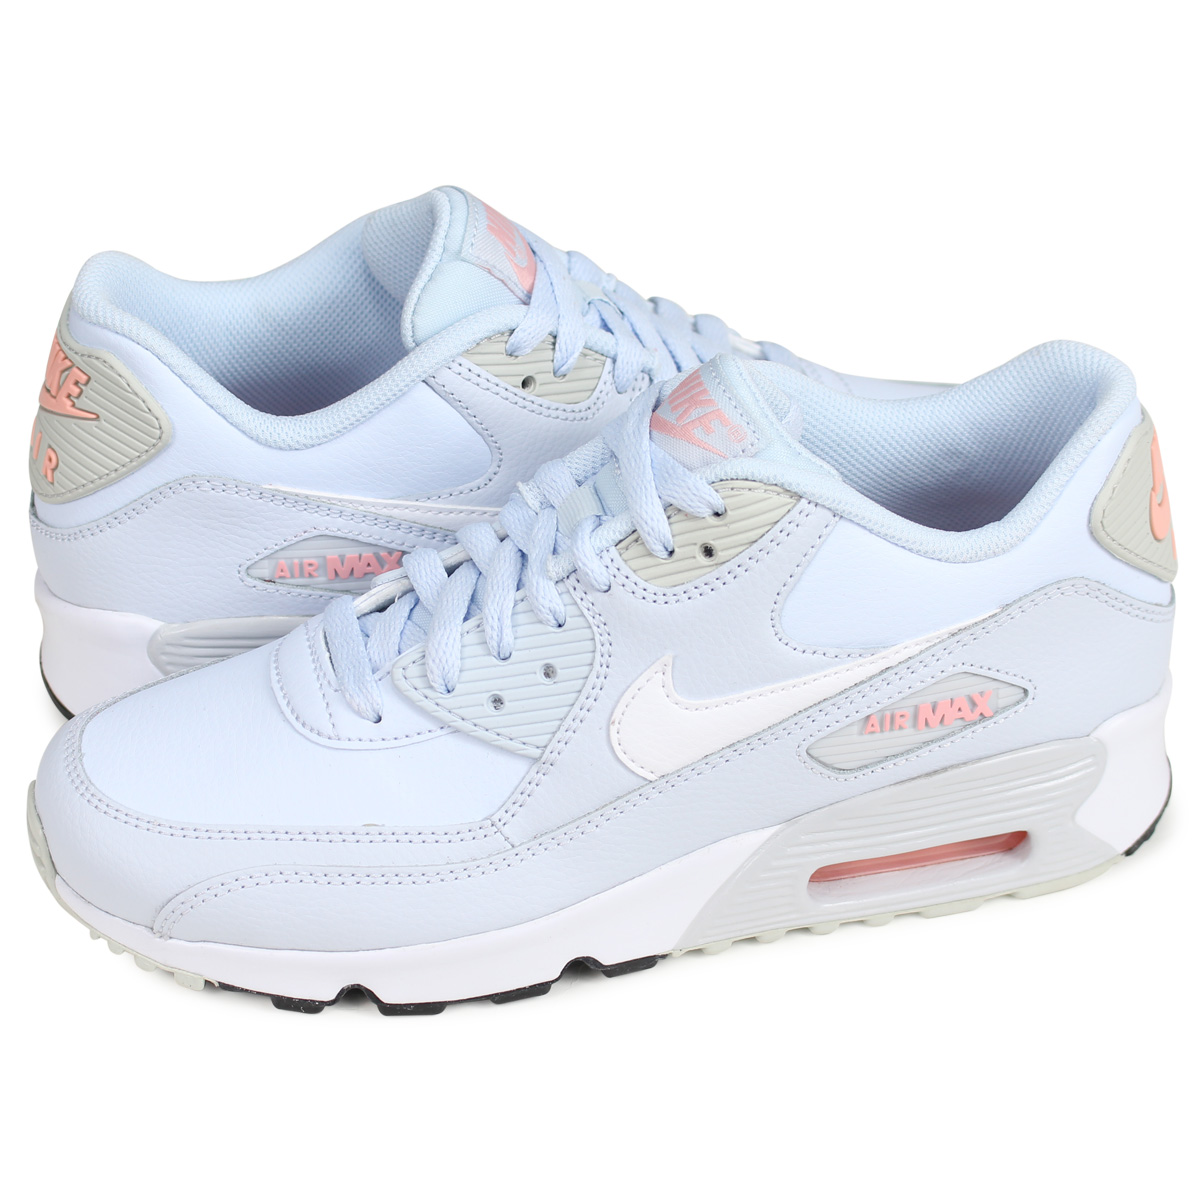 énorme réduction 3124a 11c4b Nike NIKE Air Max 90 sneakers Lady's AIR MAX 90 LEATHER GS light blue  833,376-406 [194]